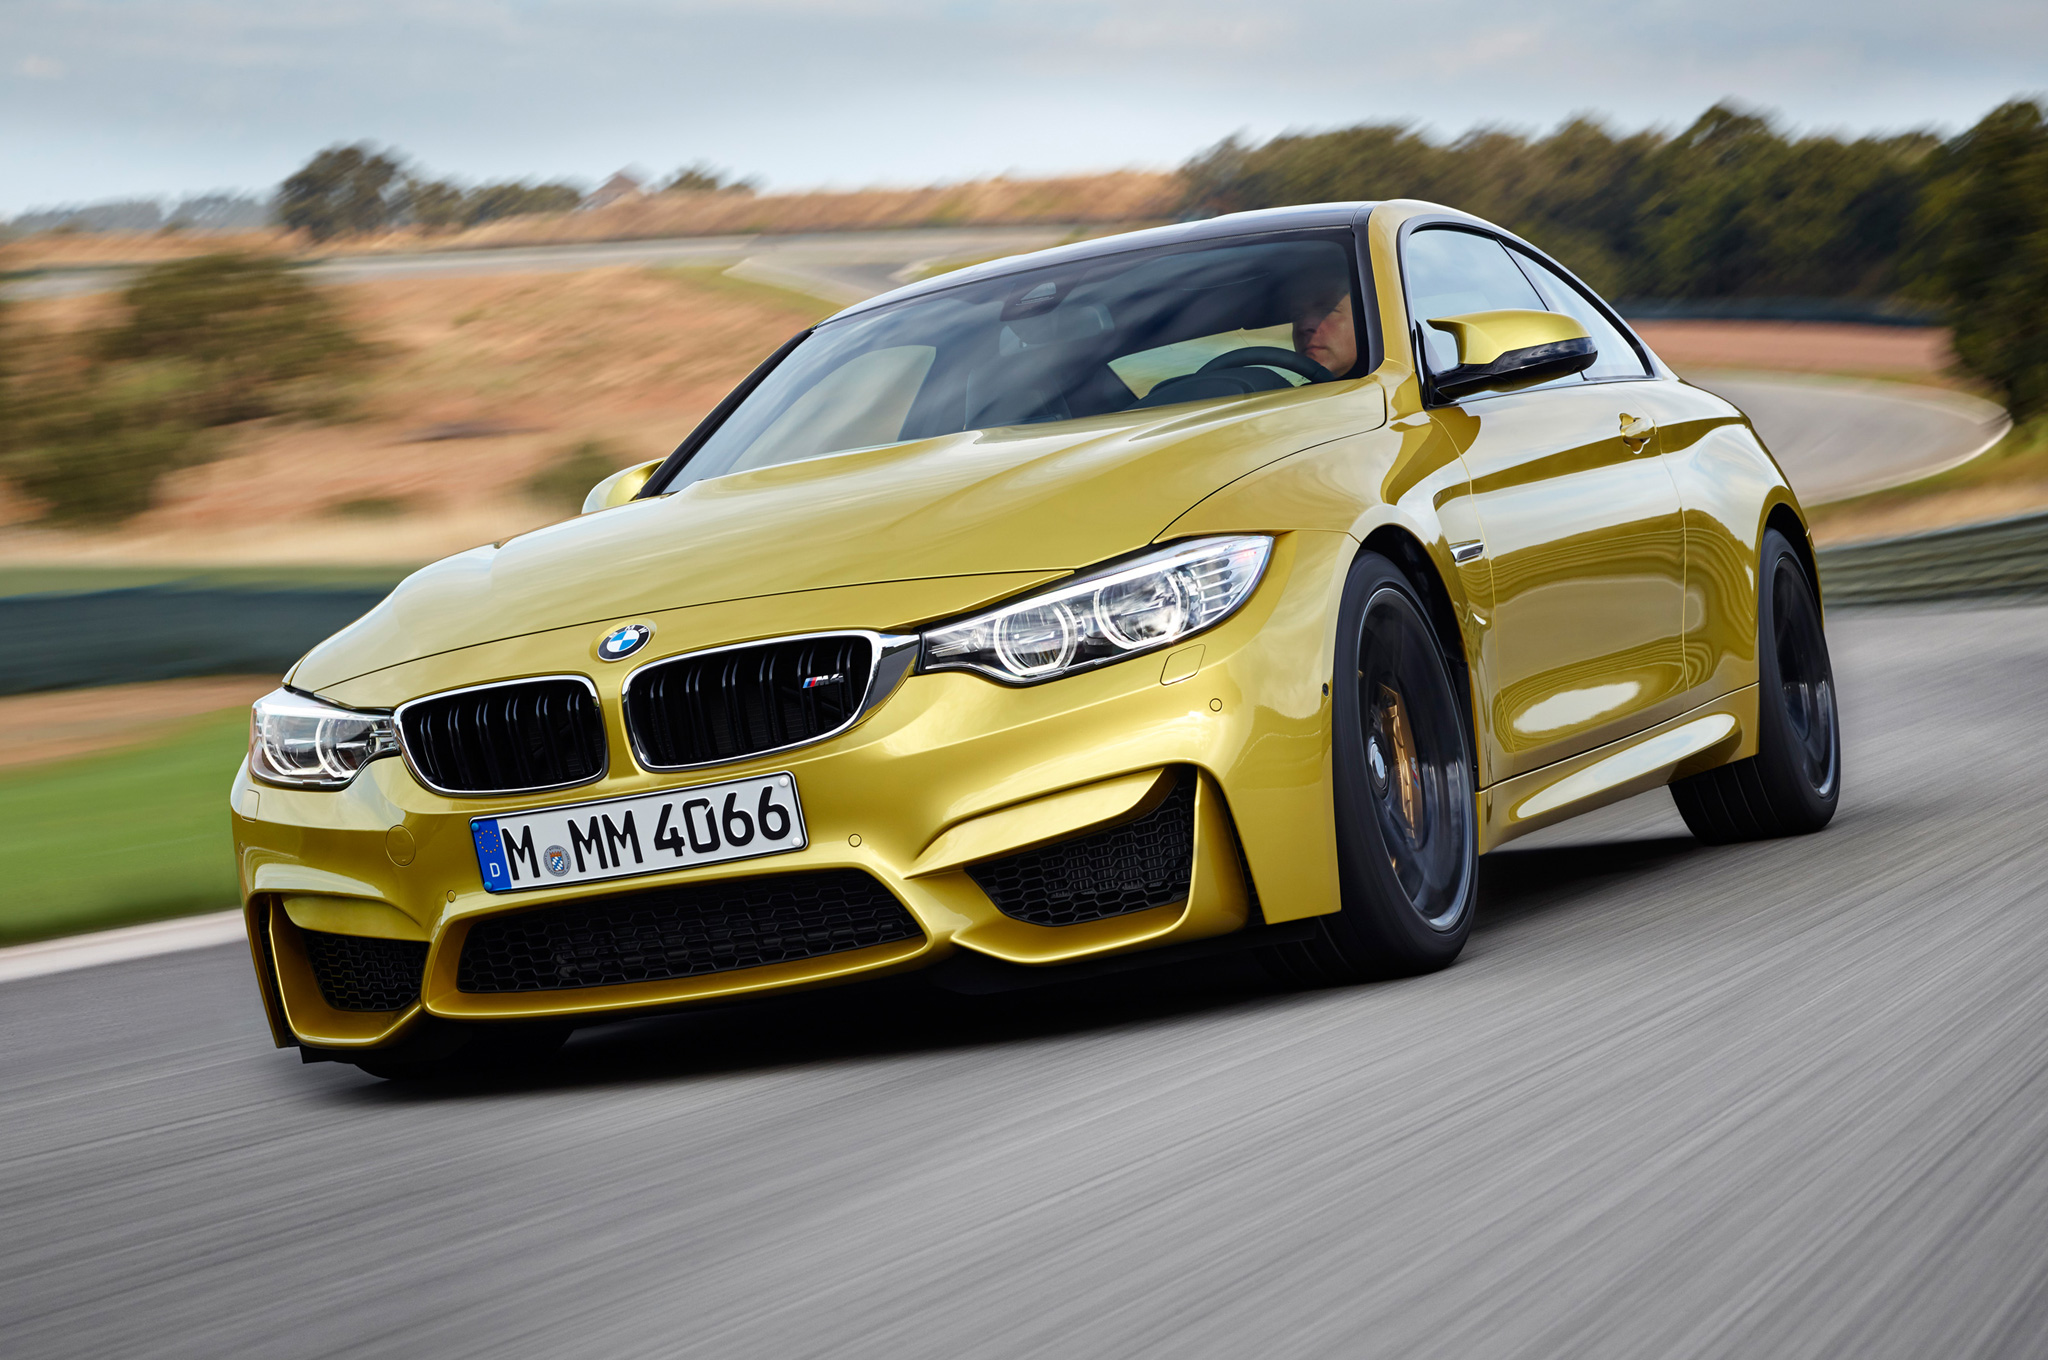 2015 Bmw M4 Test Drive (Photo 40 of 41)